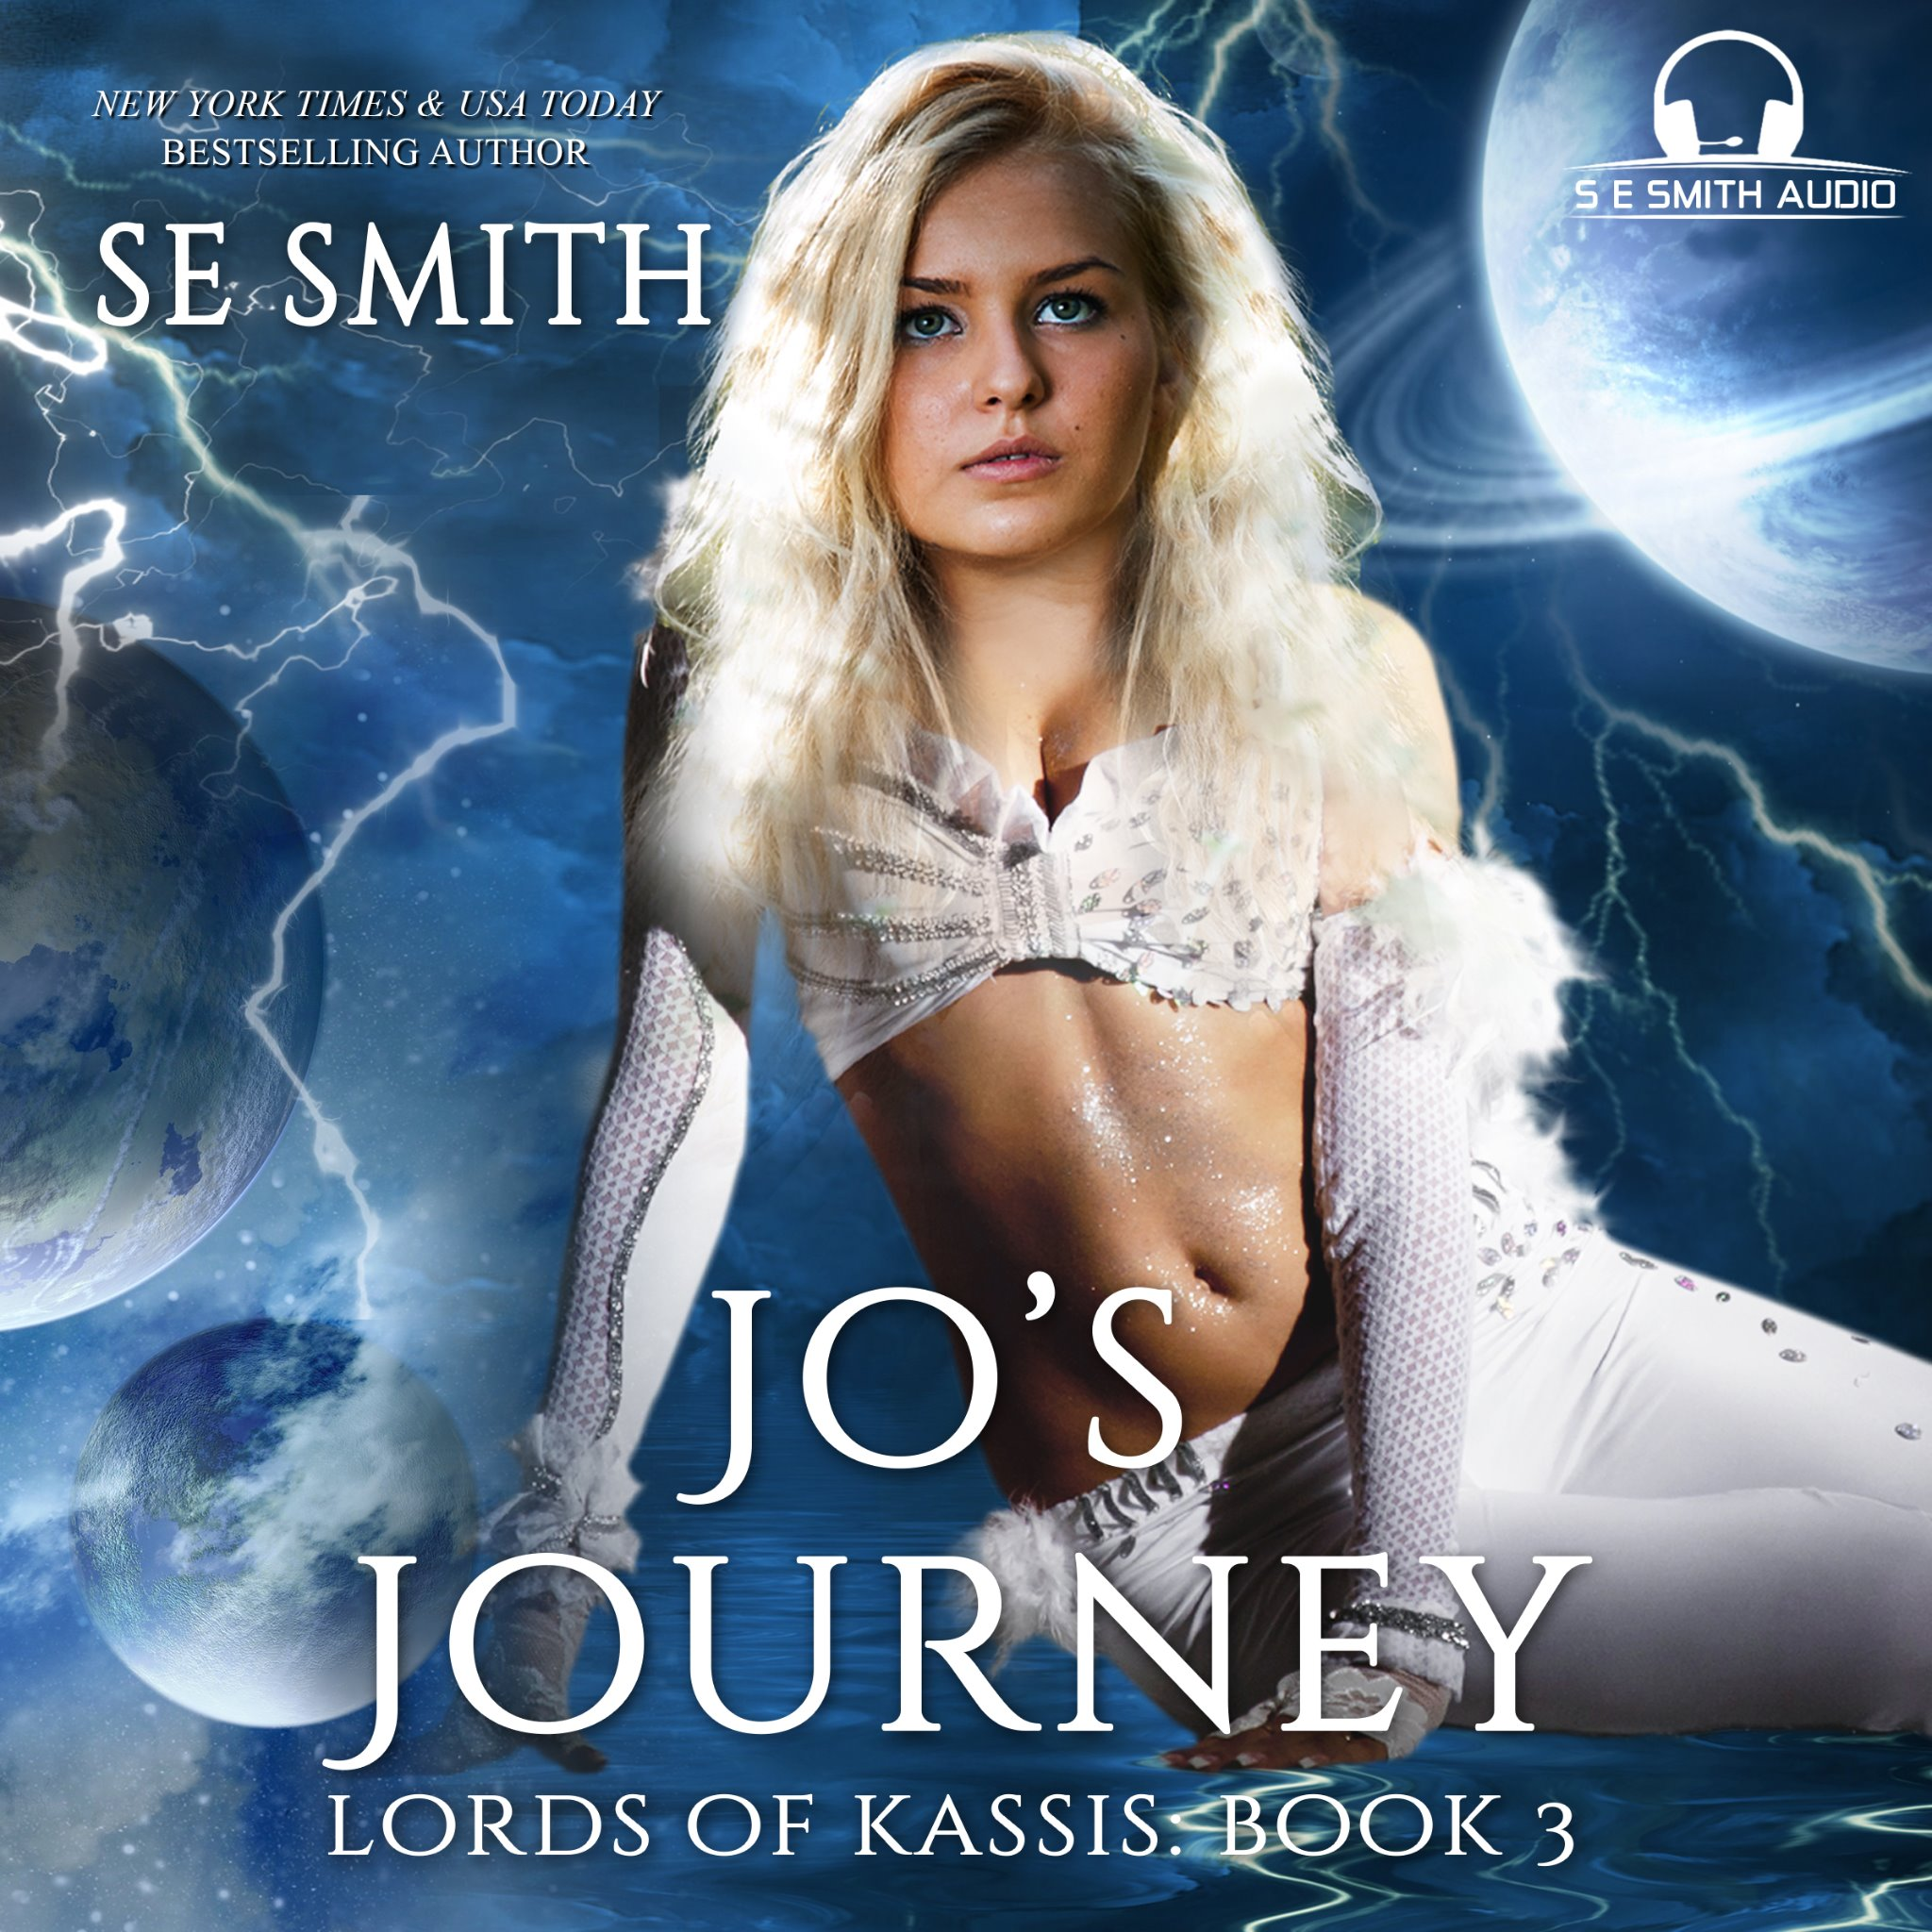 Jo's Journey: Lords of Kassis Book 3 (Audiobook CD)